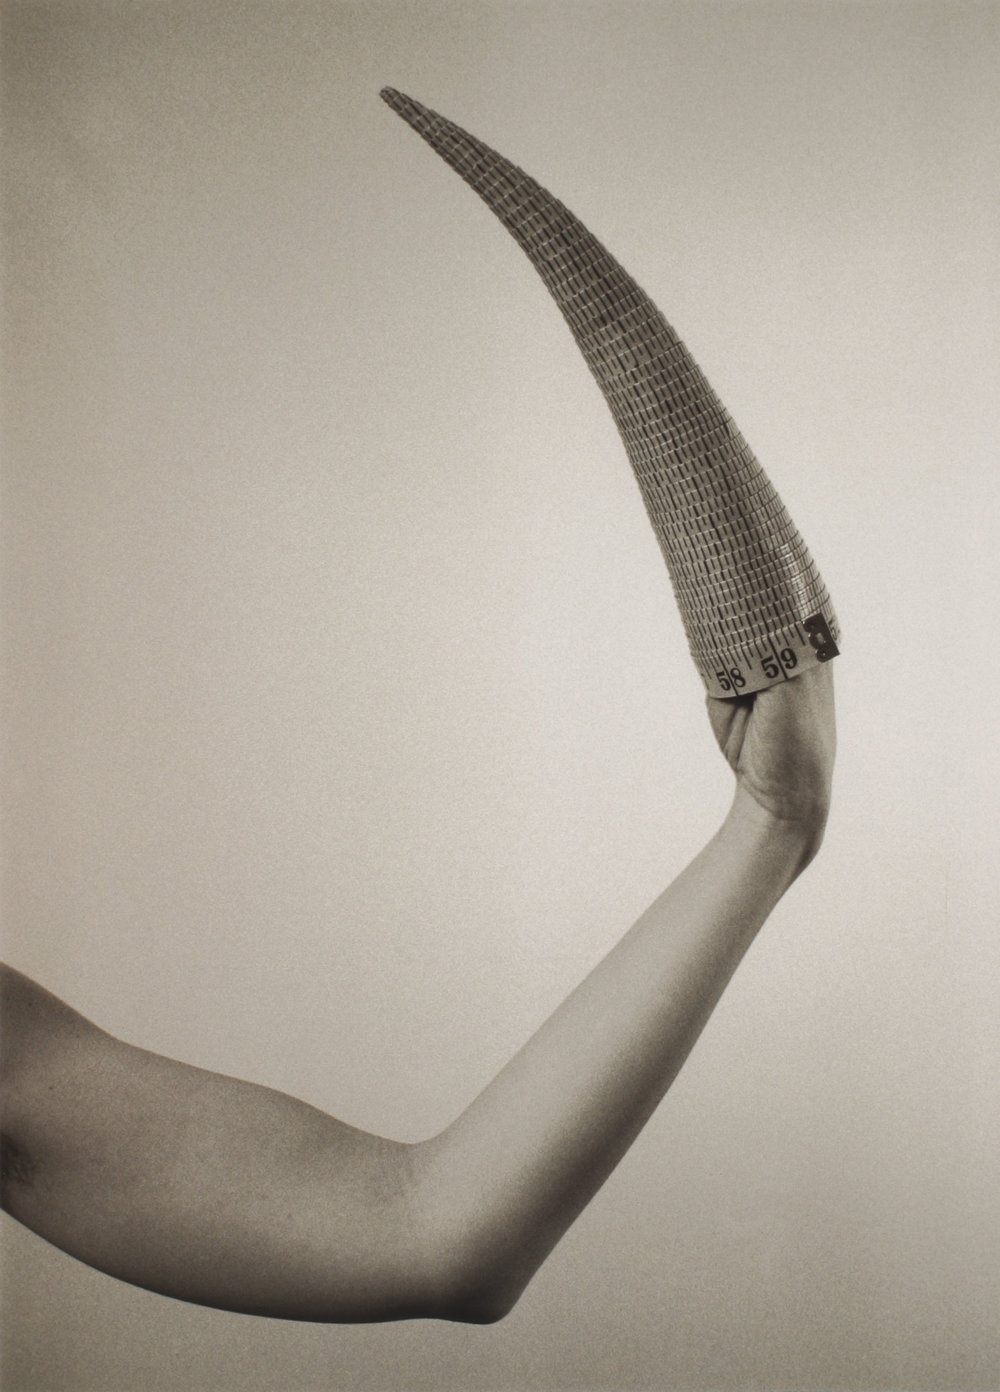 Jana Sterbak, Cone on hand, 1979-96, Gelatine Silver Print on paper, 50 × 35,5 cm, 3/15, Courtesy: Galerie Steinek and the Artist